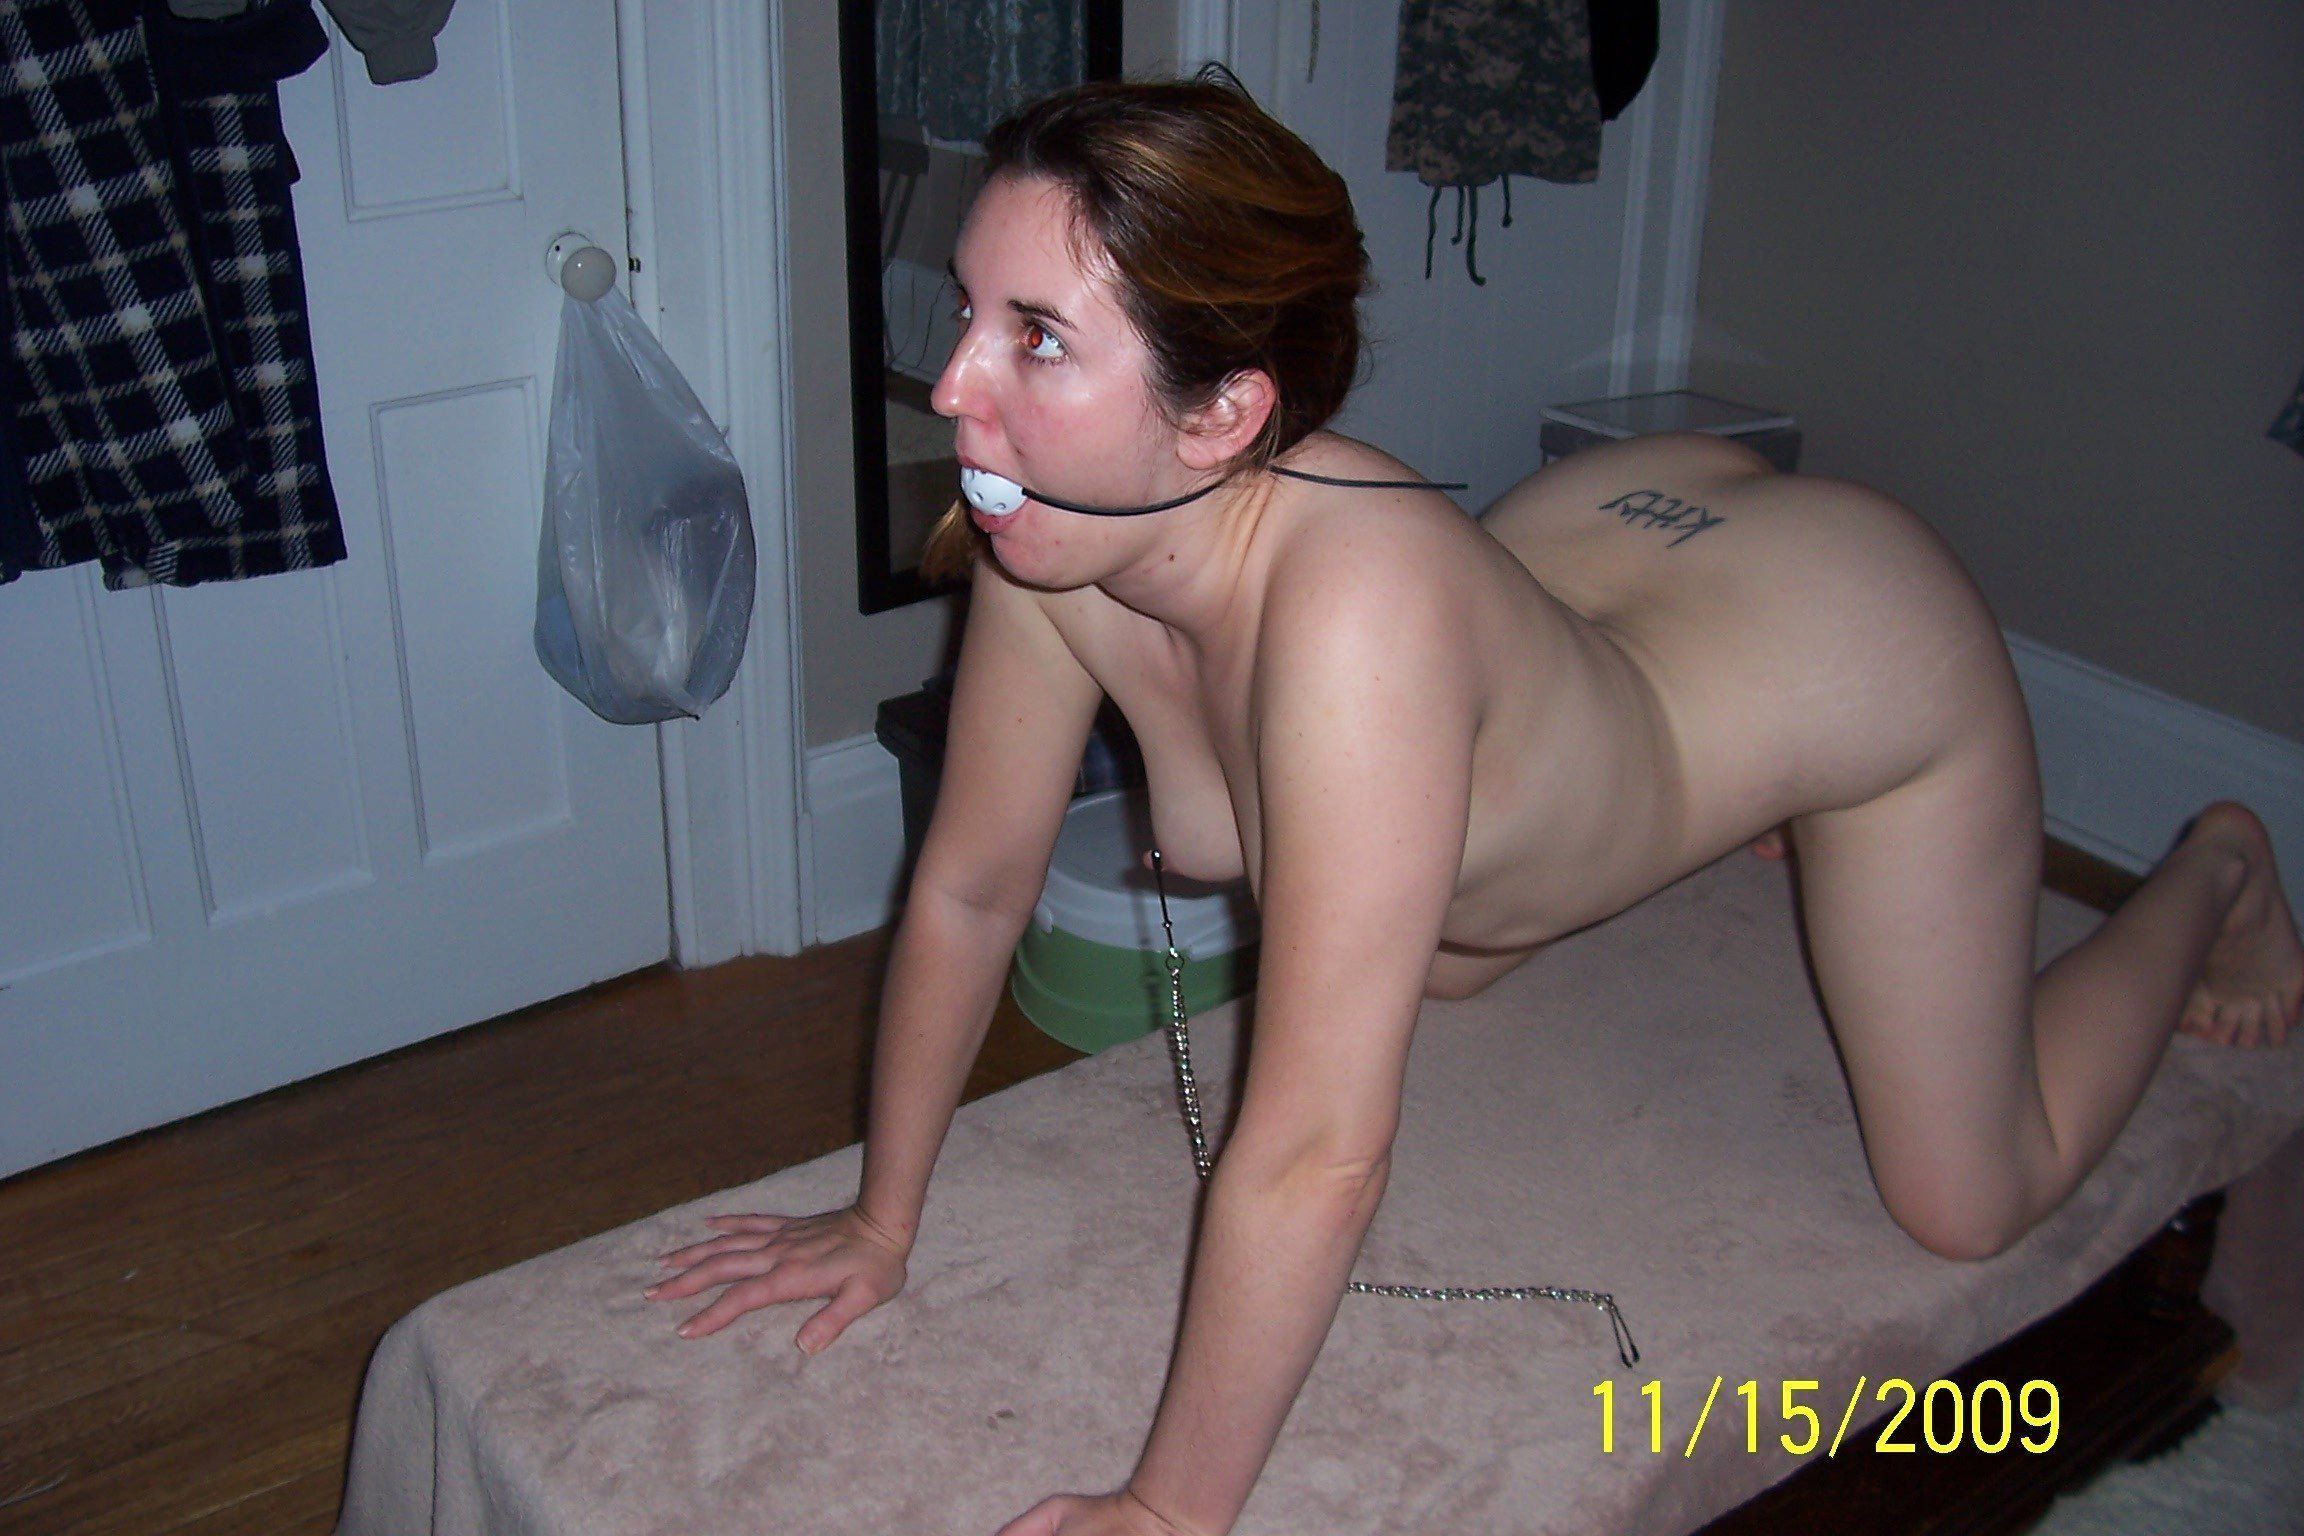 Amatuer Animal Porn amateur bdsm pictures sites - sex photo.